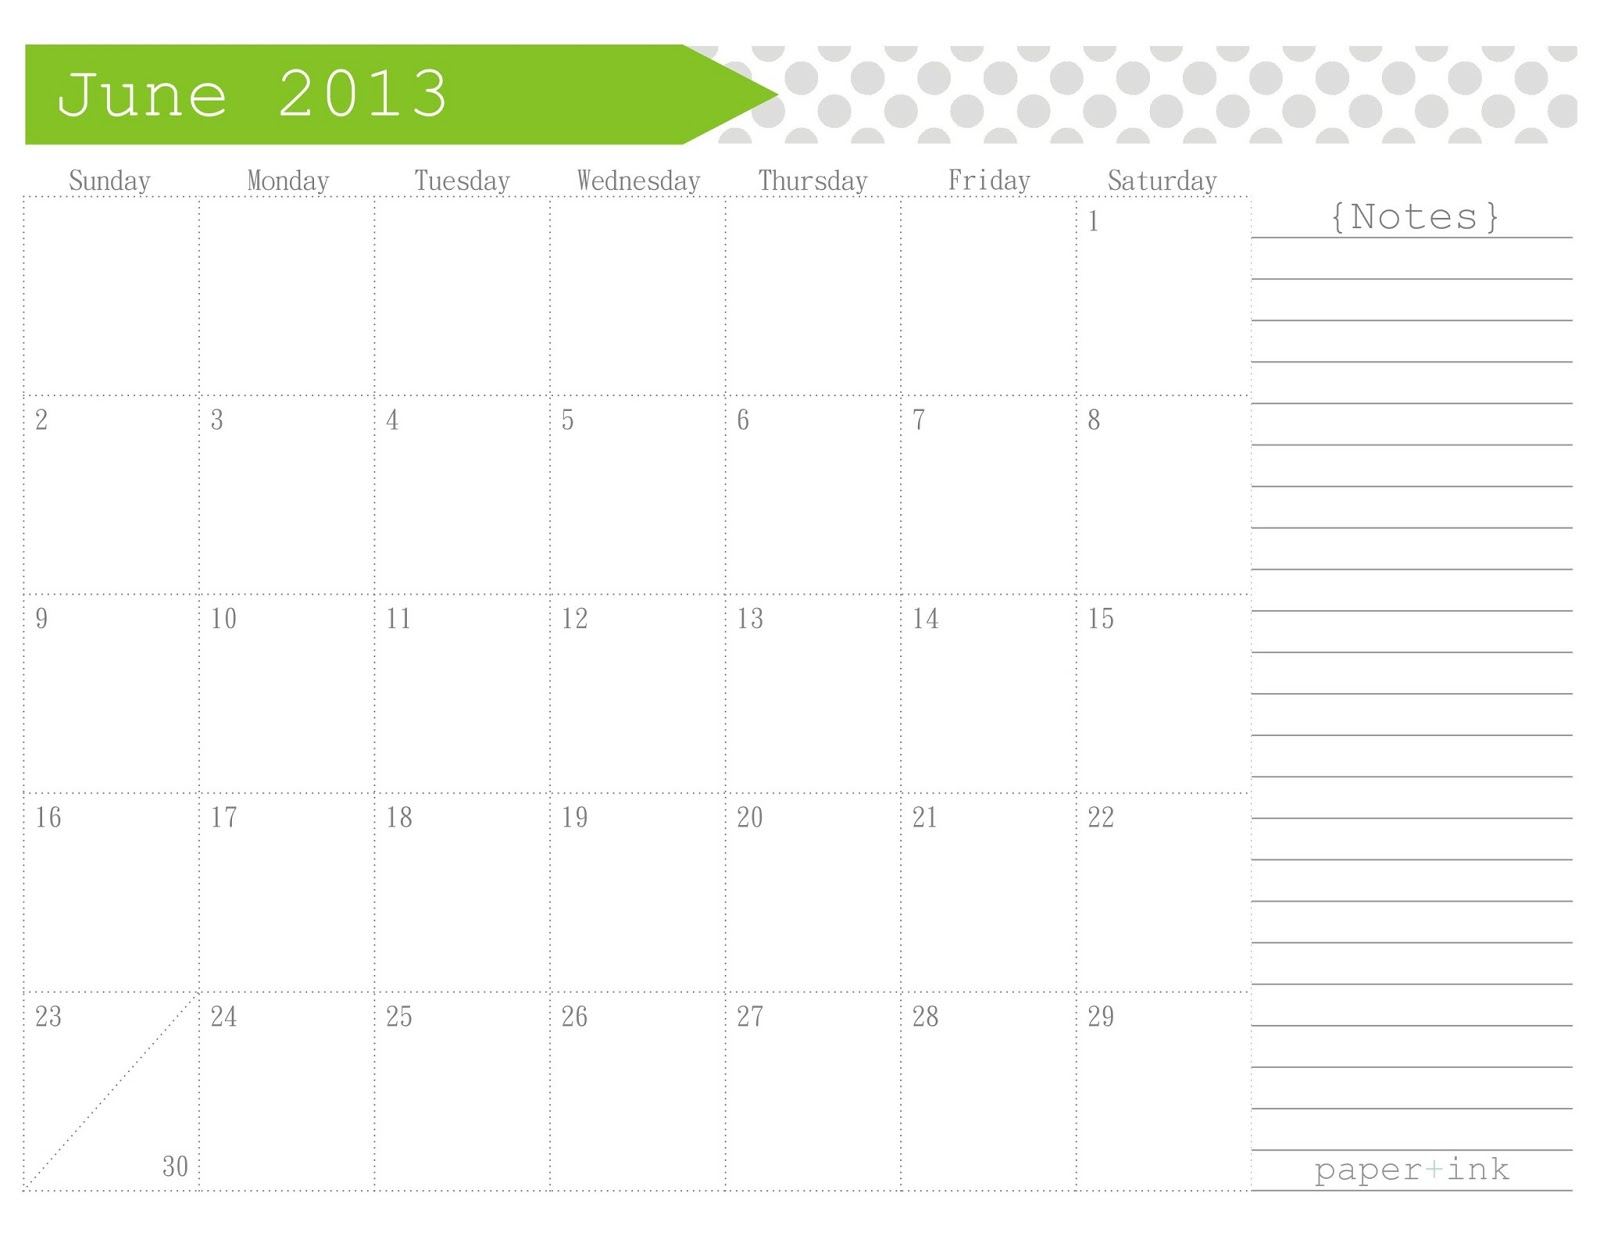 Free Printable Calendars: June / July 2013